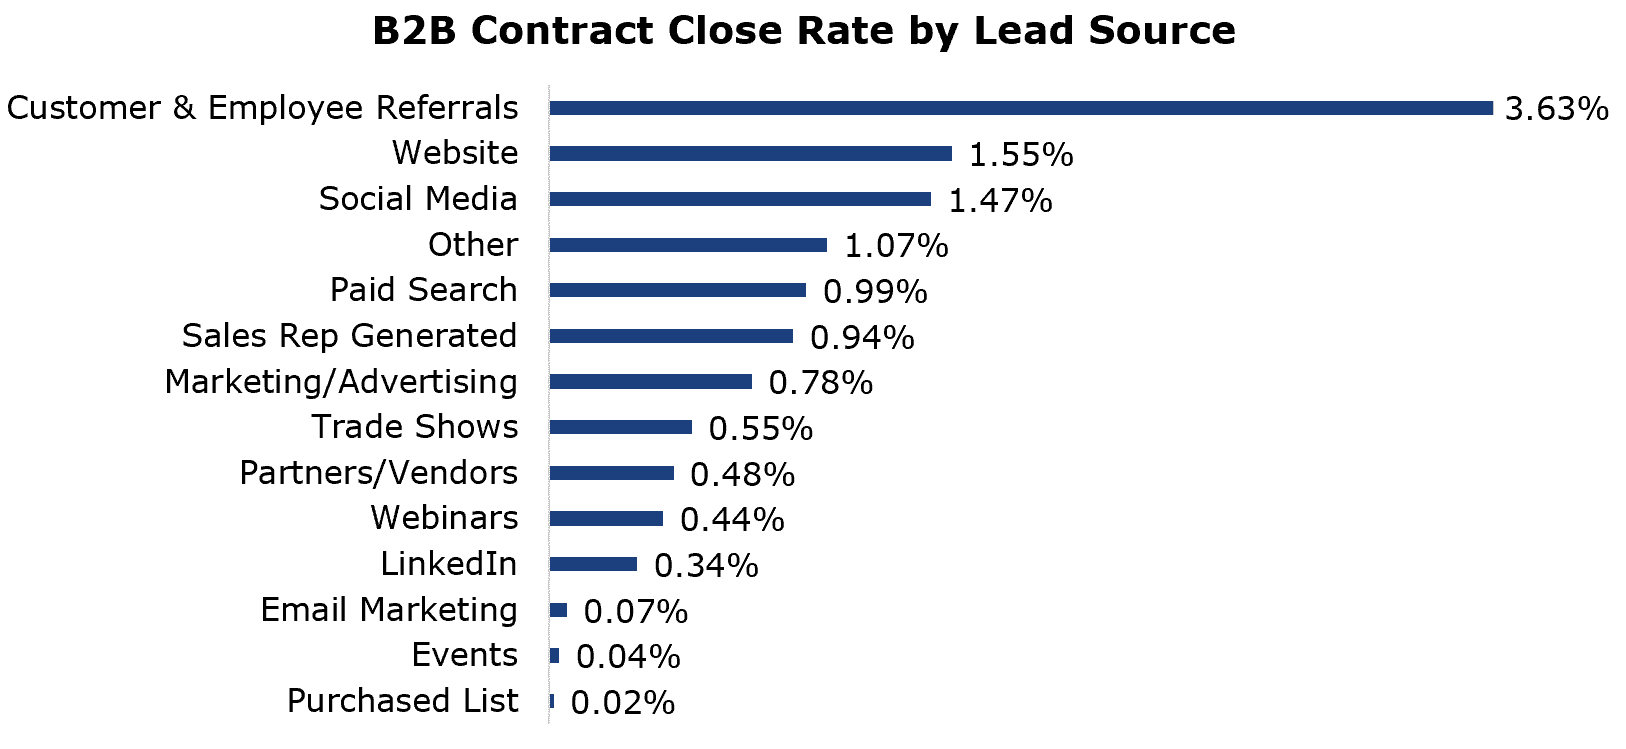 Chart of B2B Contract Close Rates by Lead Source